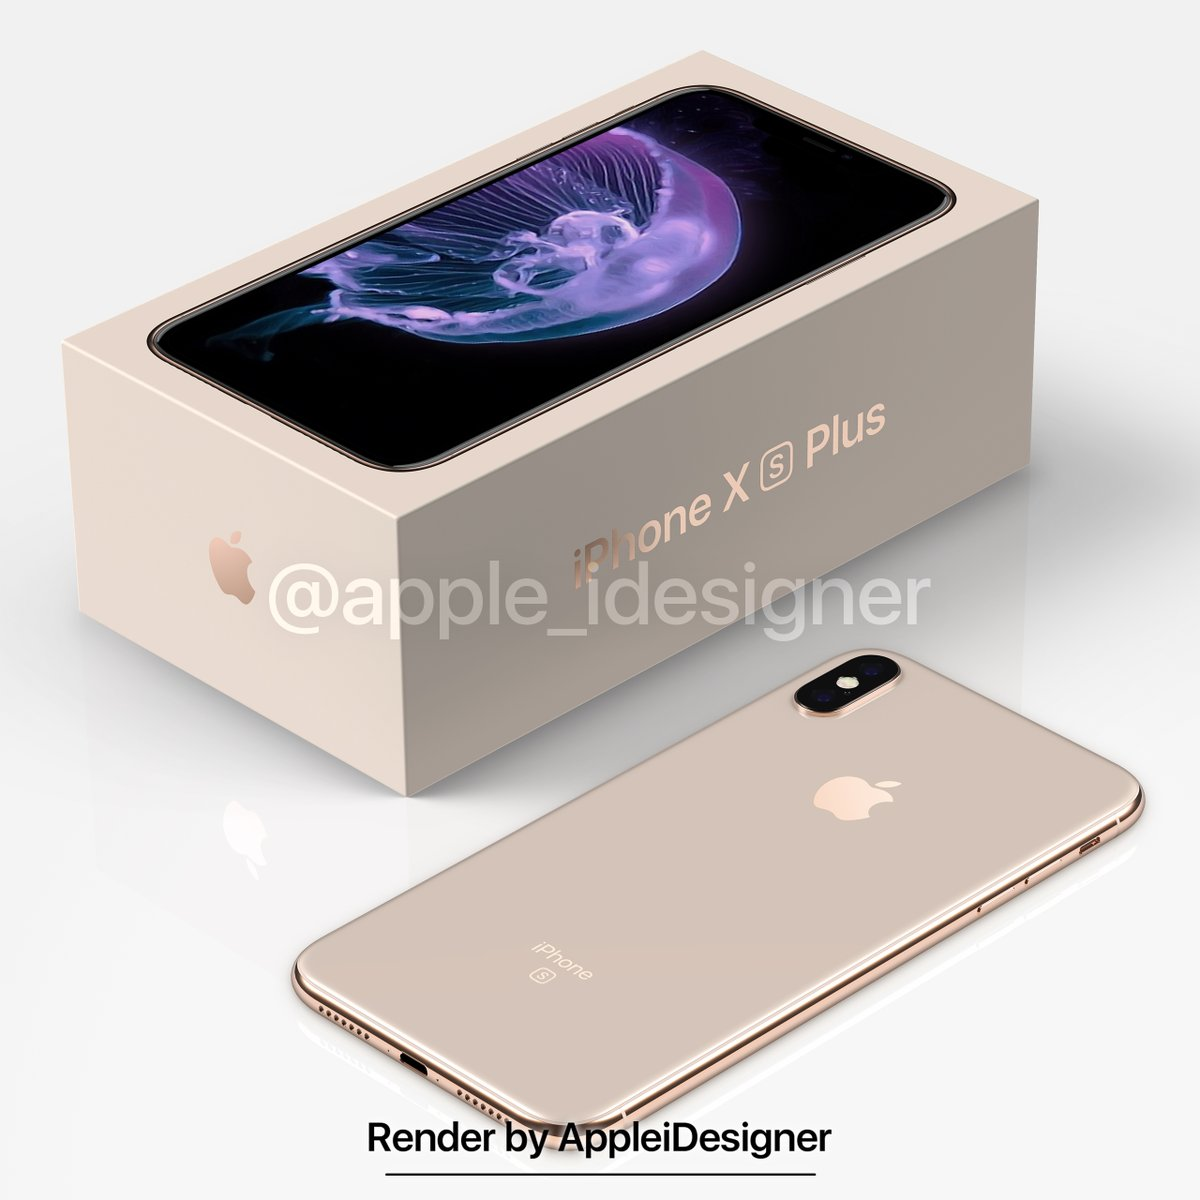 Iphone X Plus Render By Appleidesigner 1